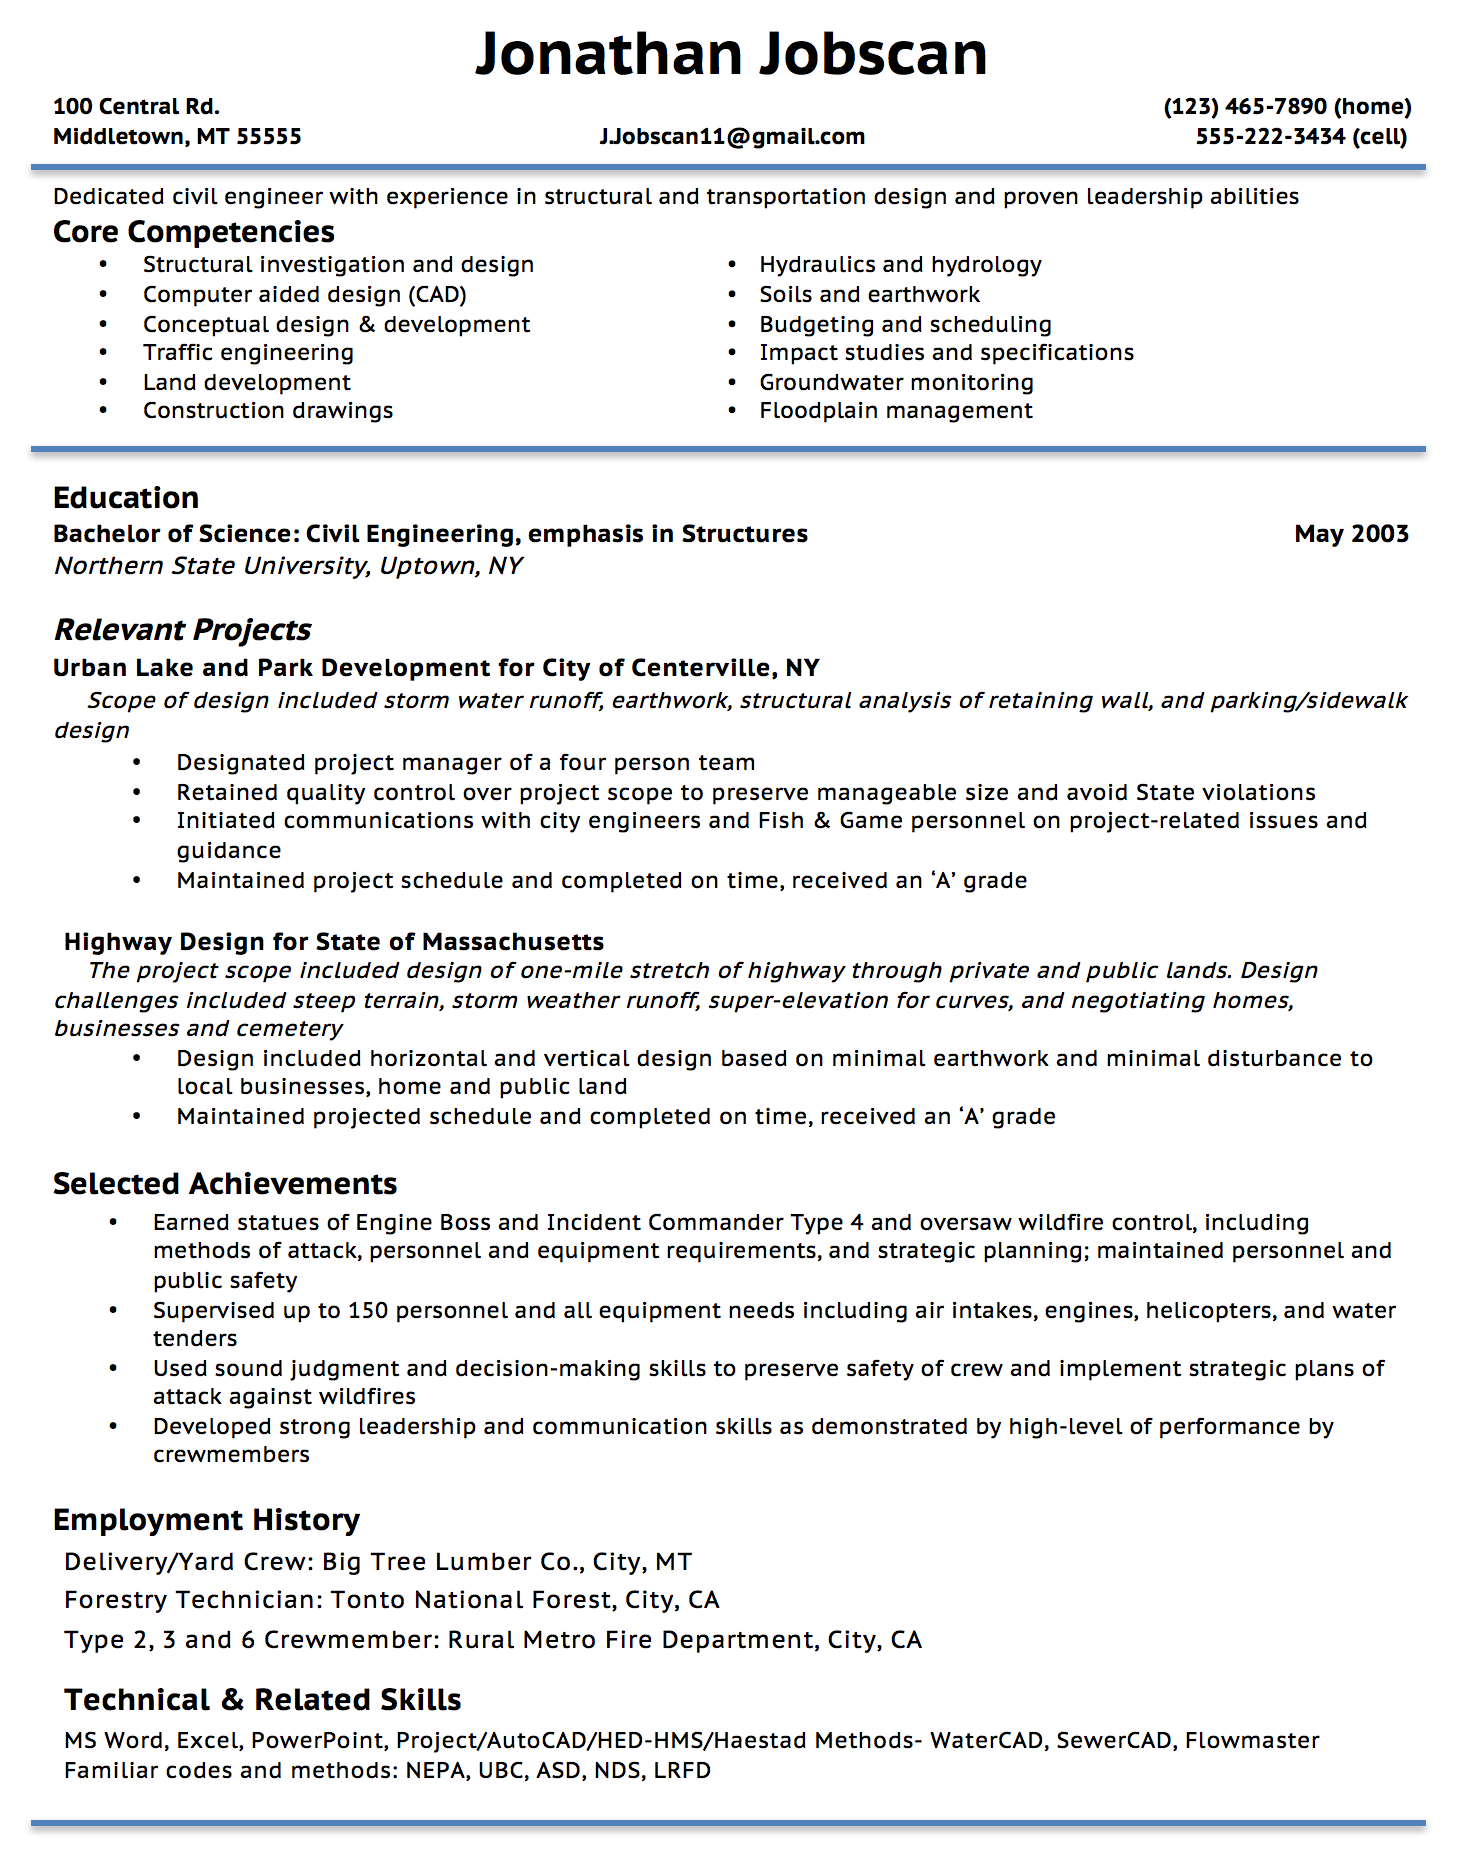 Opposenewapstandardsus  Ravishing Resume Writing Guide  Jobscan With Handsome Example Of A Functional Resume Format With Lovely Logistics Management Specialist Resume Also Free Online Resume Builder And Download In Addition Resume Objective Samples For Any Job And Do I Need A Resume As Well As Fashion Buyer Resume Additionally Graphic Design Student Resume From Jobscanco With Opposenewapstandardsus  Handsome Resume Writing Guide  Jobscan With Lovely Example Of A Functional Resume Format And Ravishing Logistics Management Specialist Resume Also Free Online Resume Builder And Download In Addition Resume Objective Samples For Any Job From Jobscanco